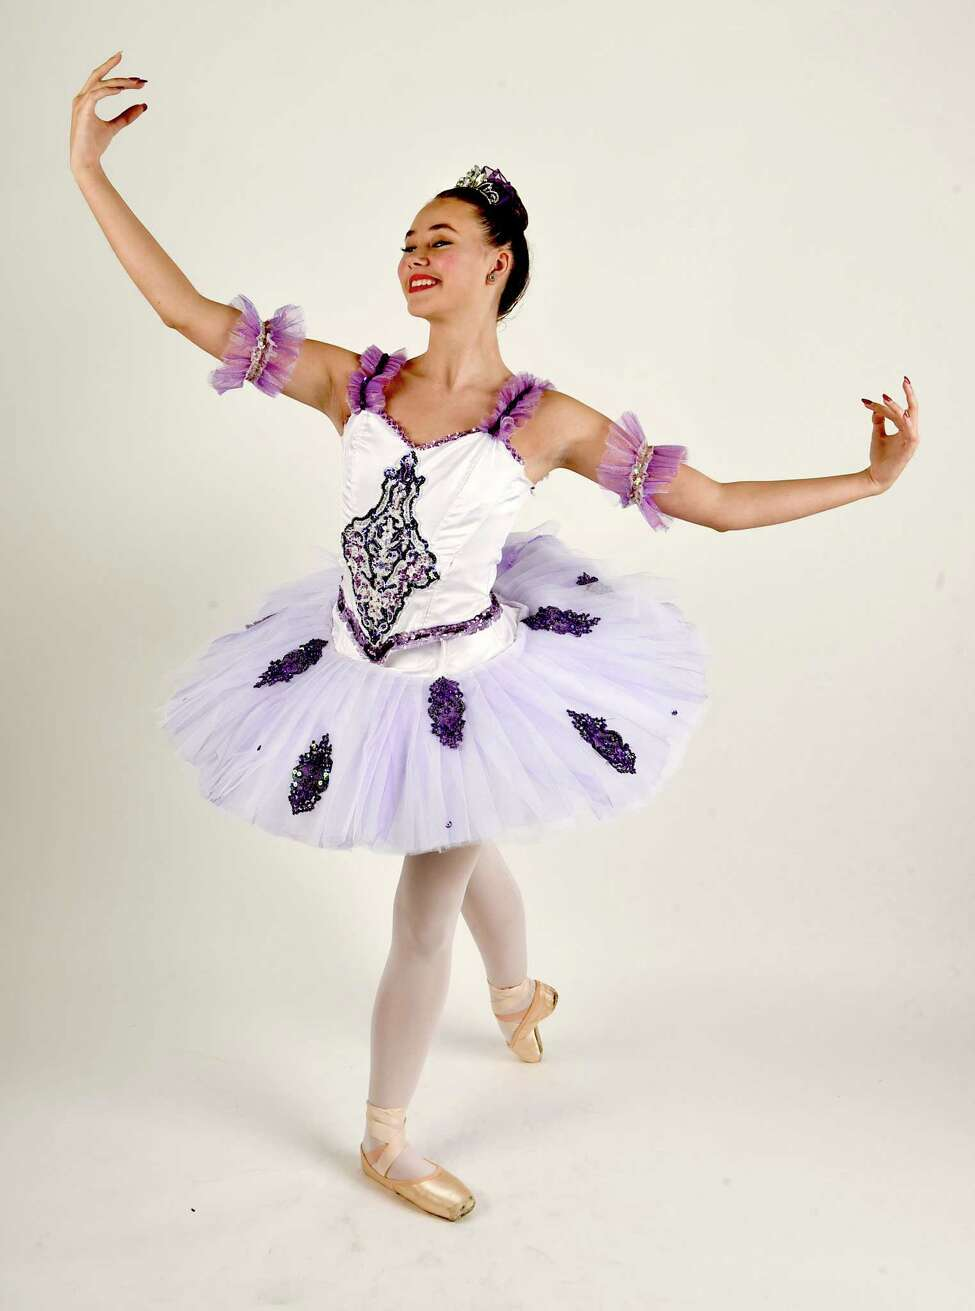 Samantha Percy, who is playing the Sugar Plum Fairy in Northeast Ballet Company's production of the Nutcracker at SPAC, displays her costume with some ballet poses on Tuesday, Oct. 10, 2017 in Colonie, N.Y. (Lori Van Buren / Times Union)